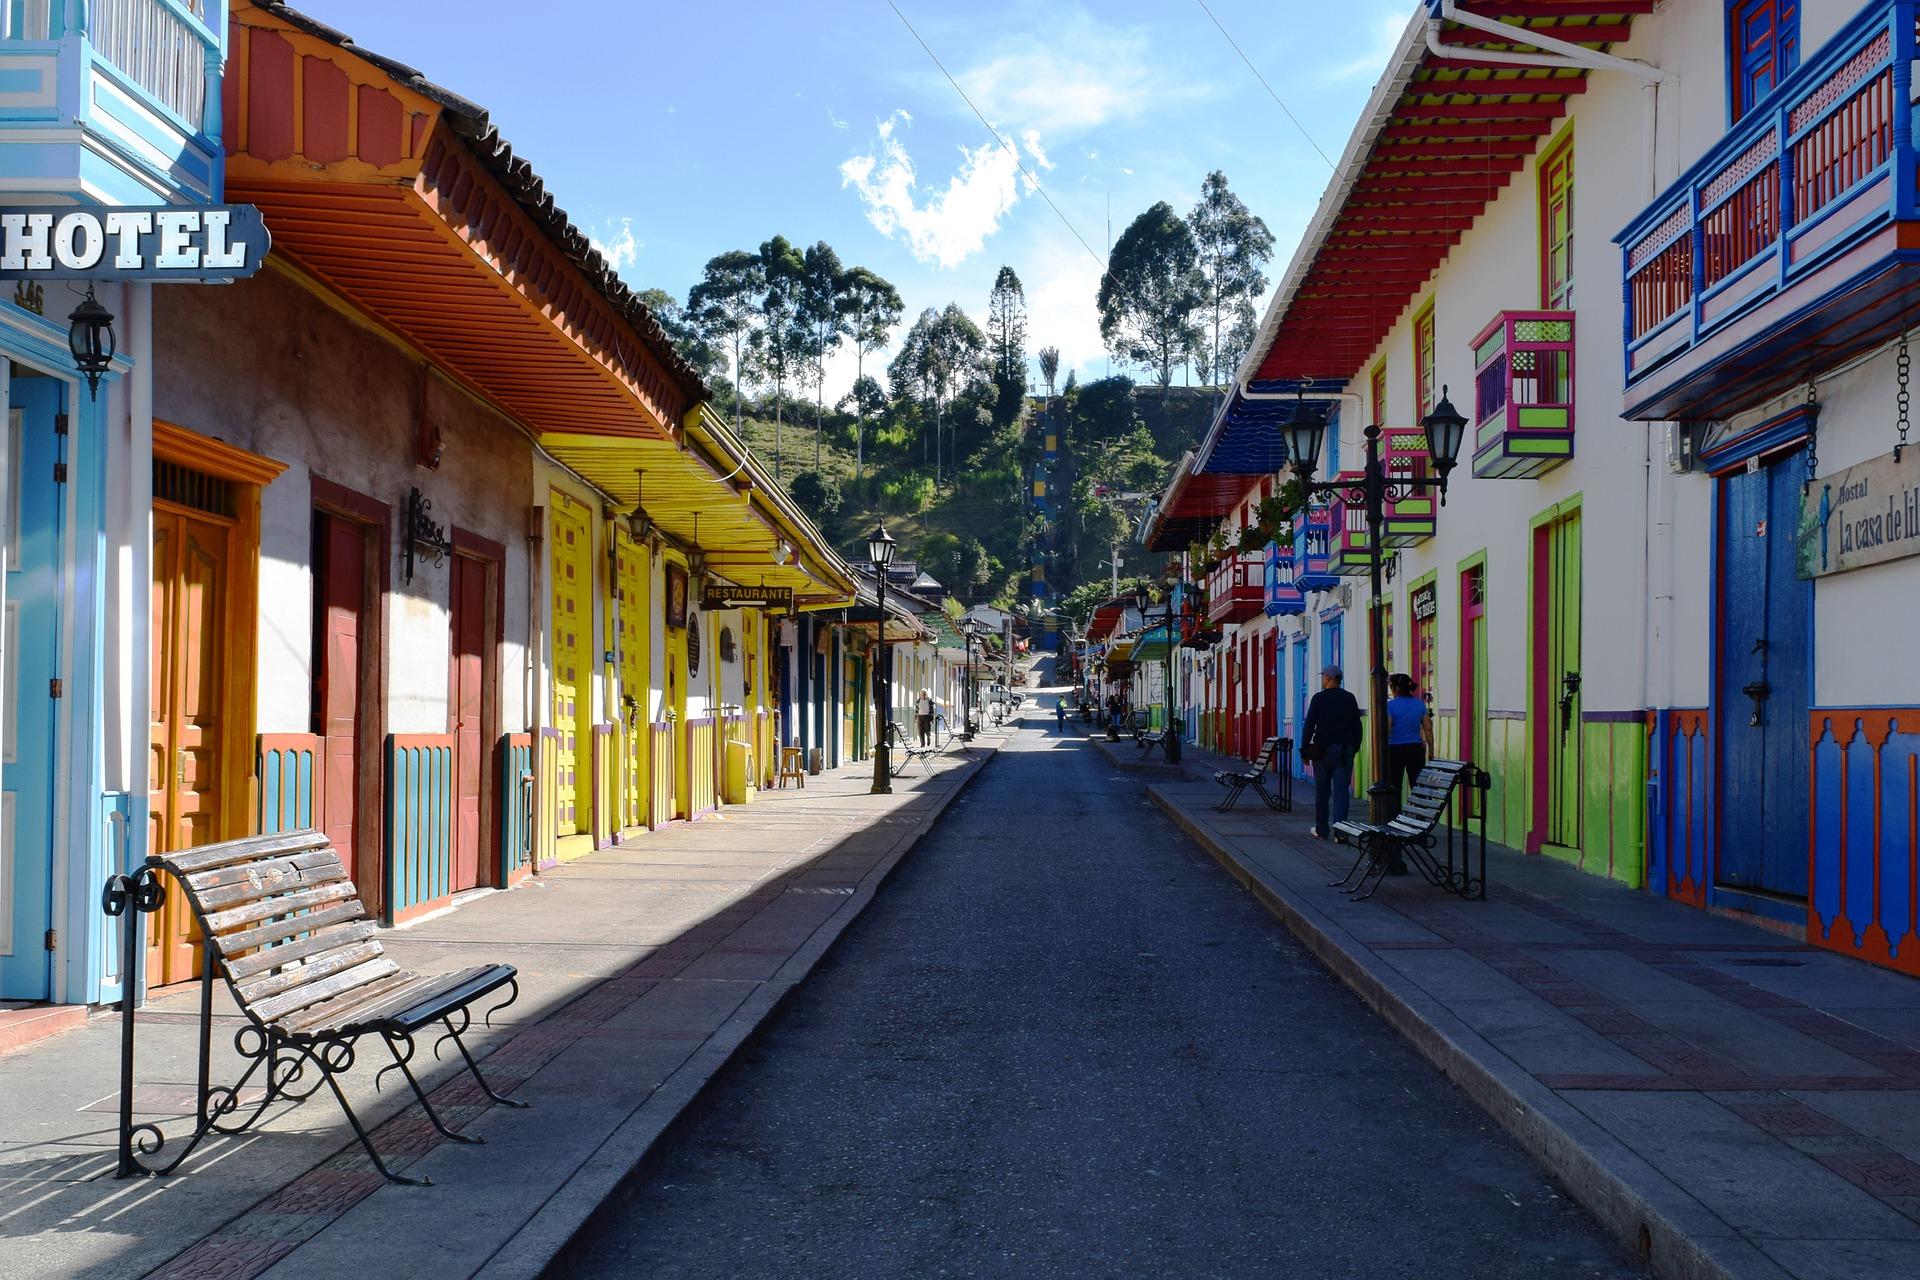 This is an image of the small pueblo called Salento, in the Quindio department of Colombia